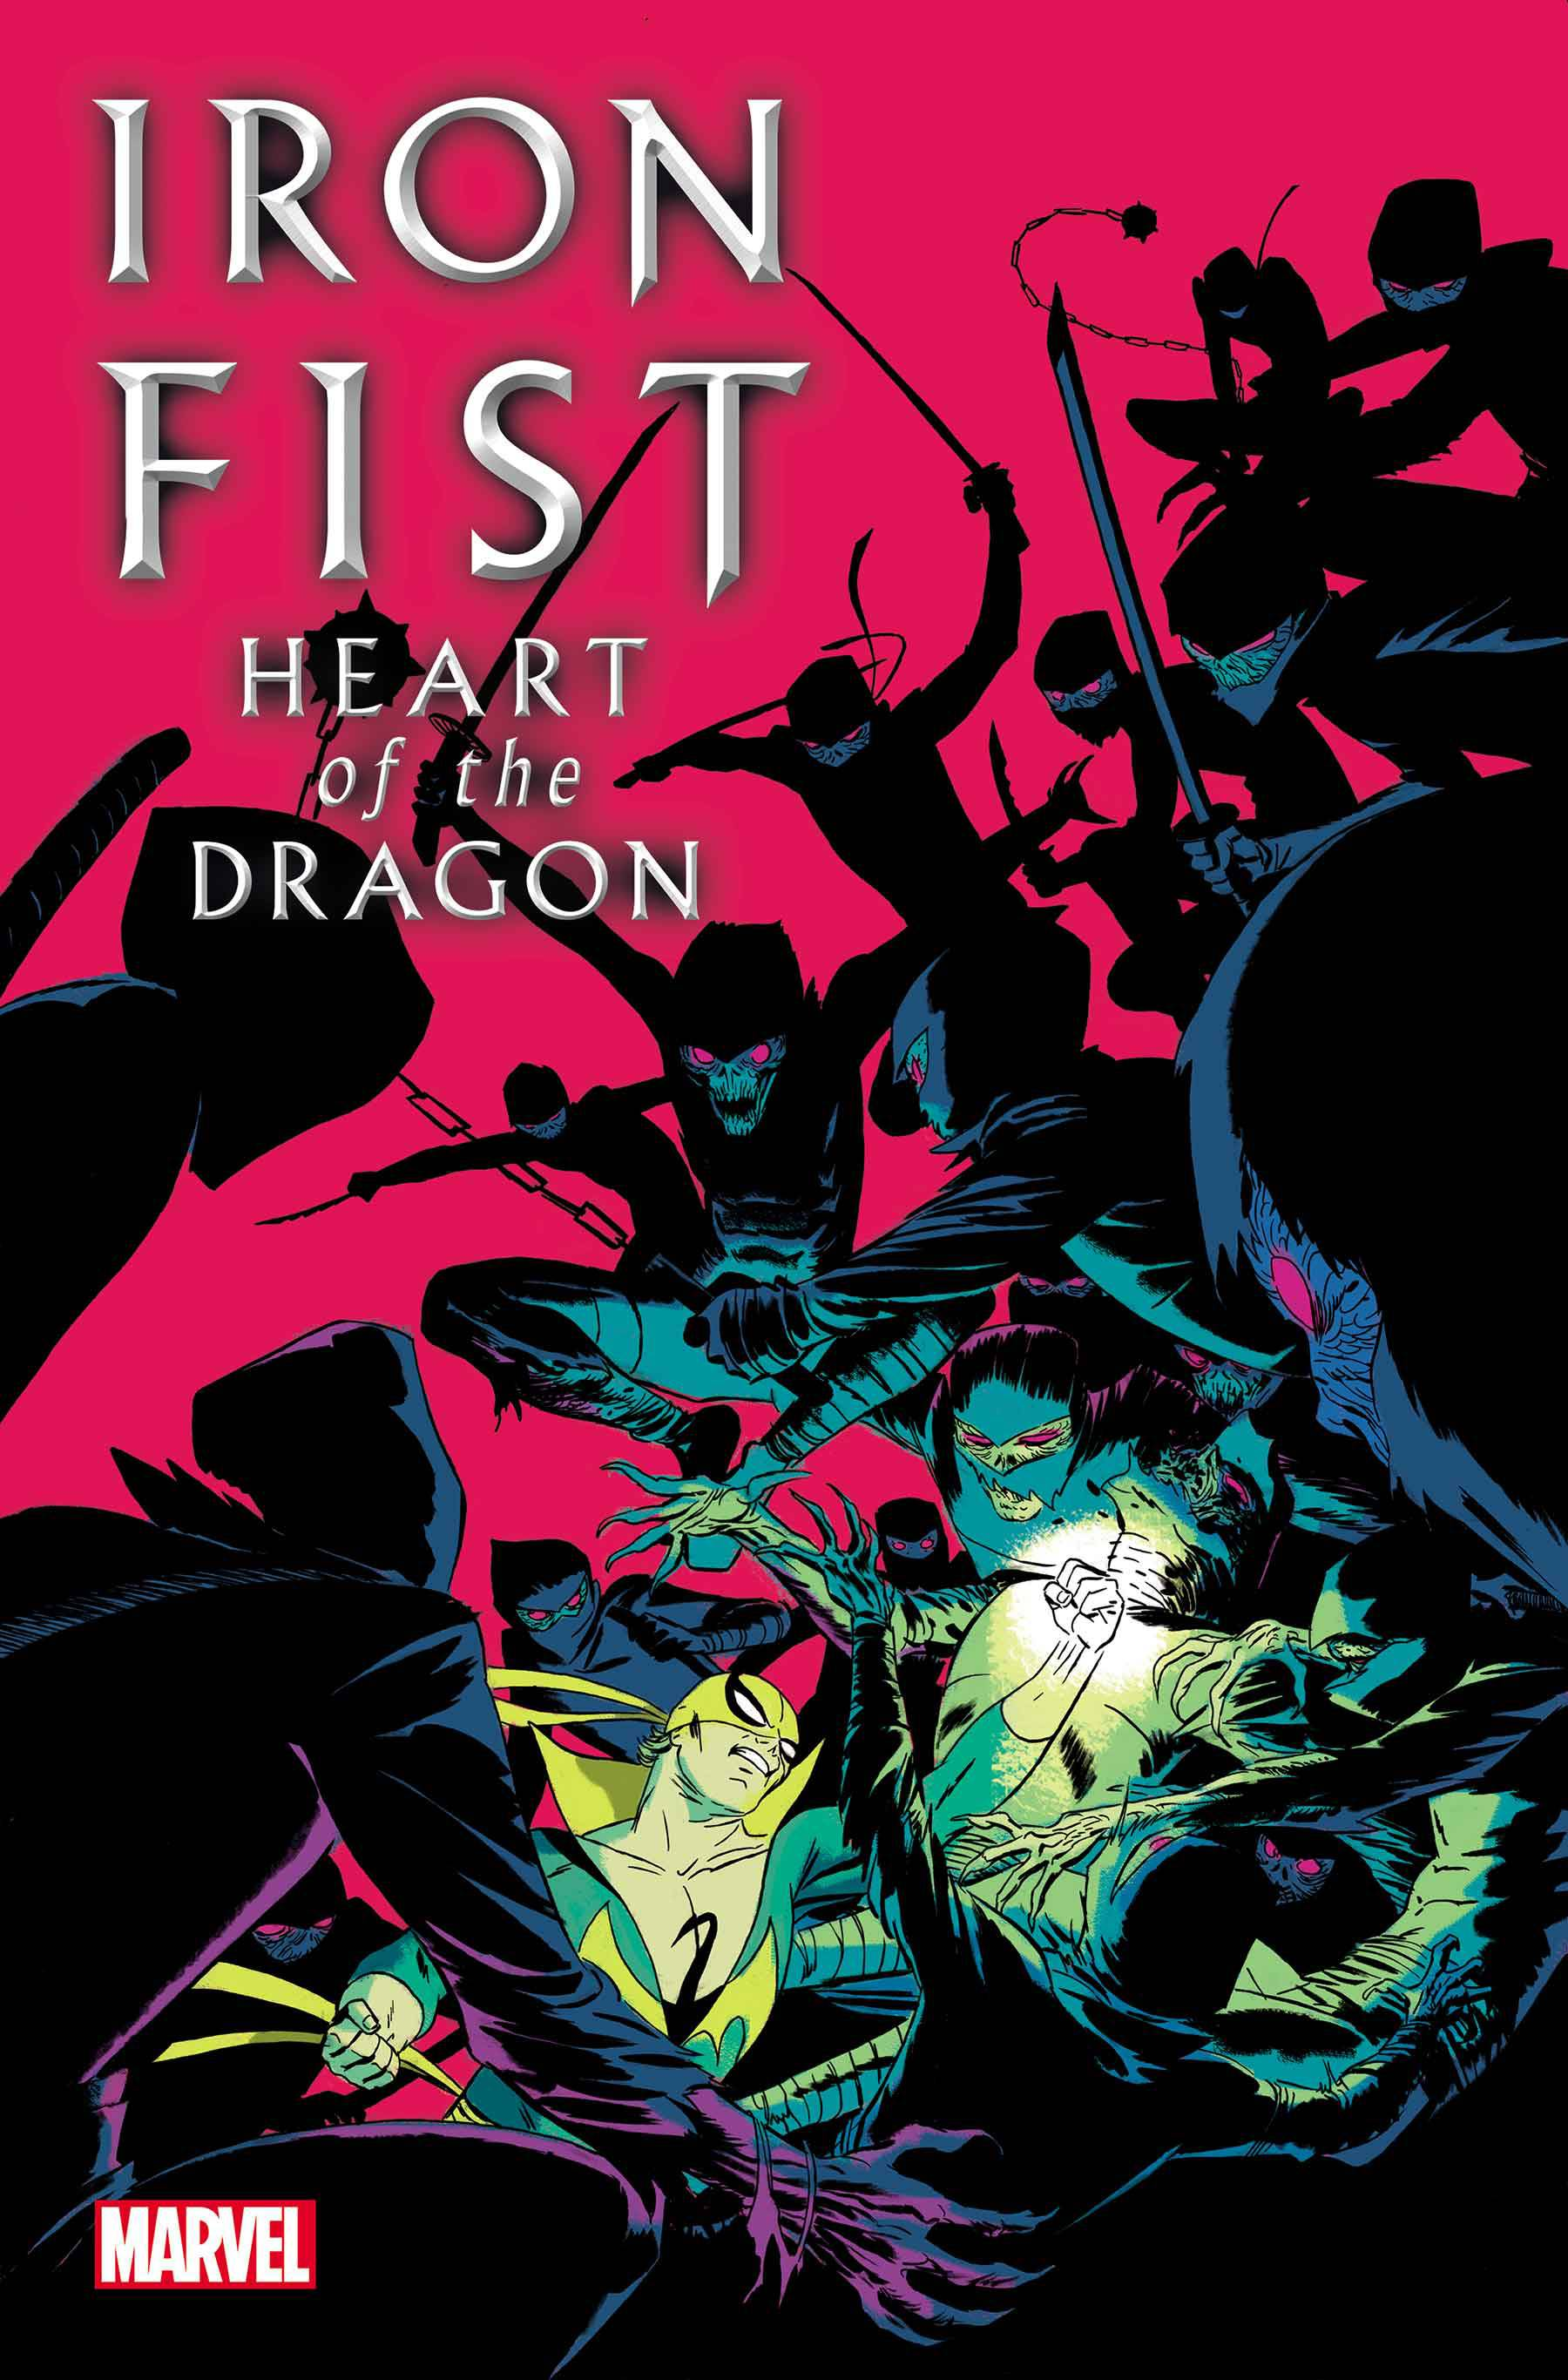 IRON FIST HEART OF DRAGON